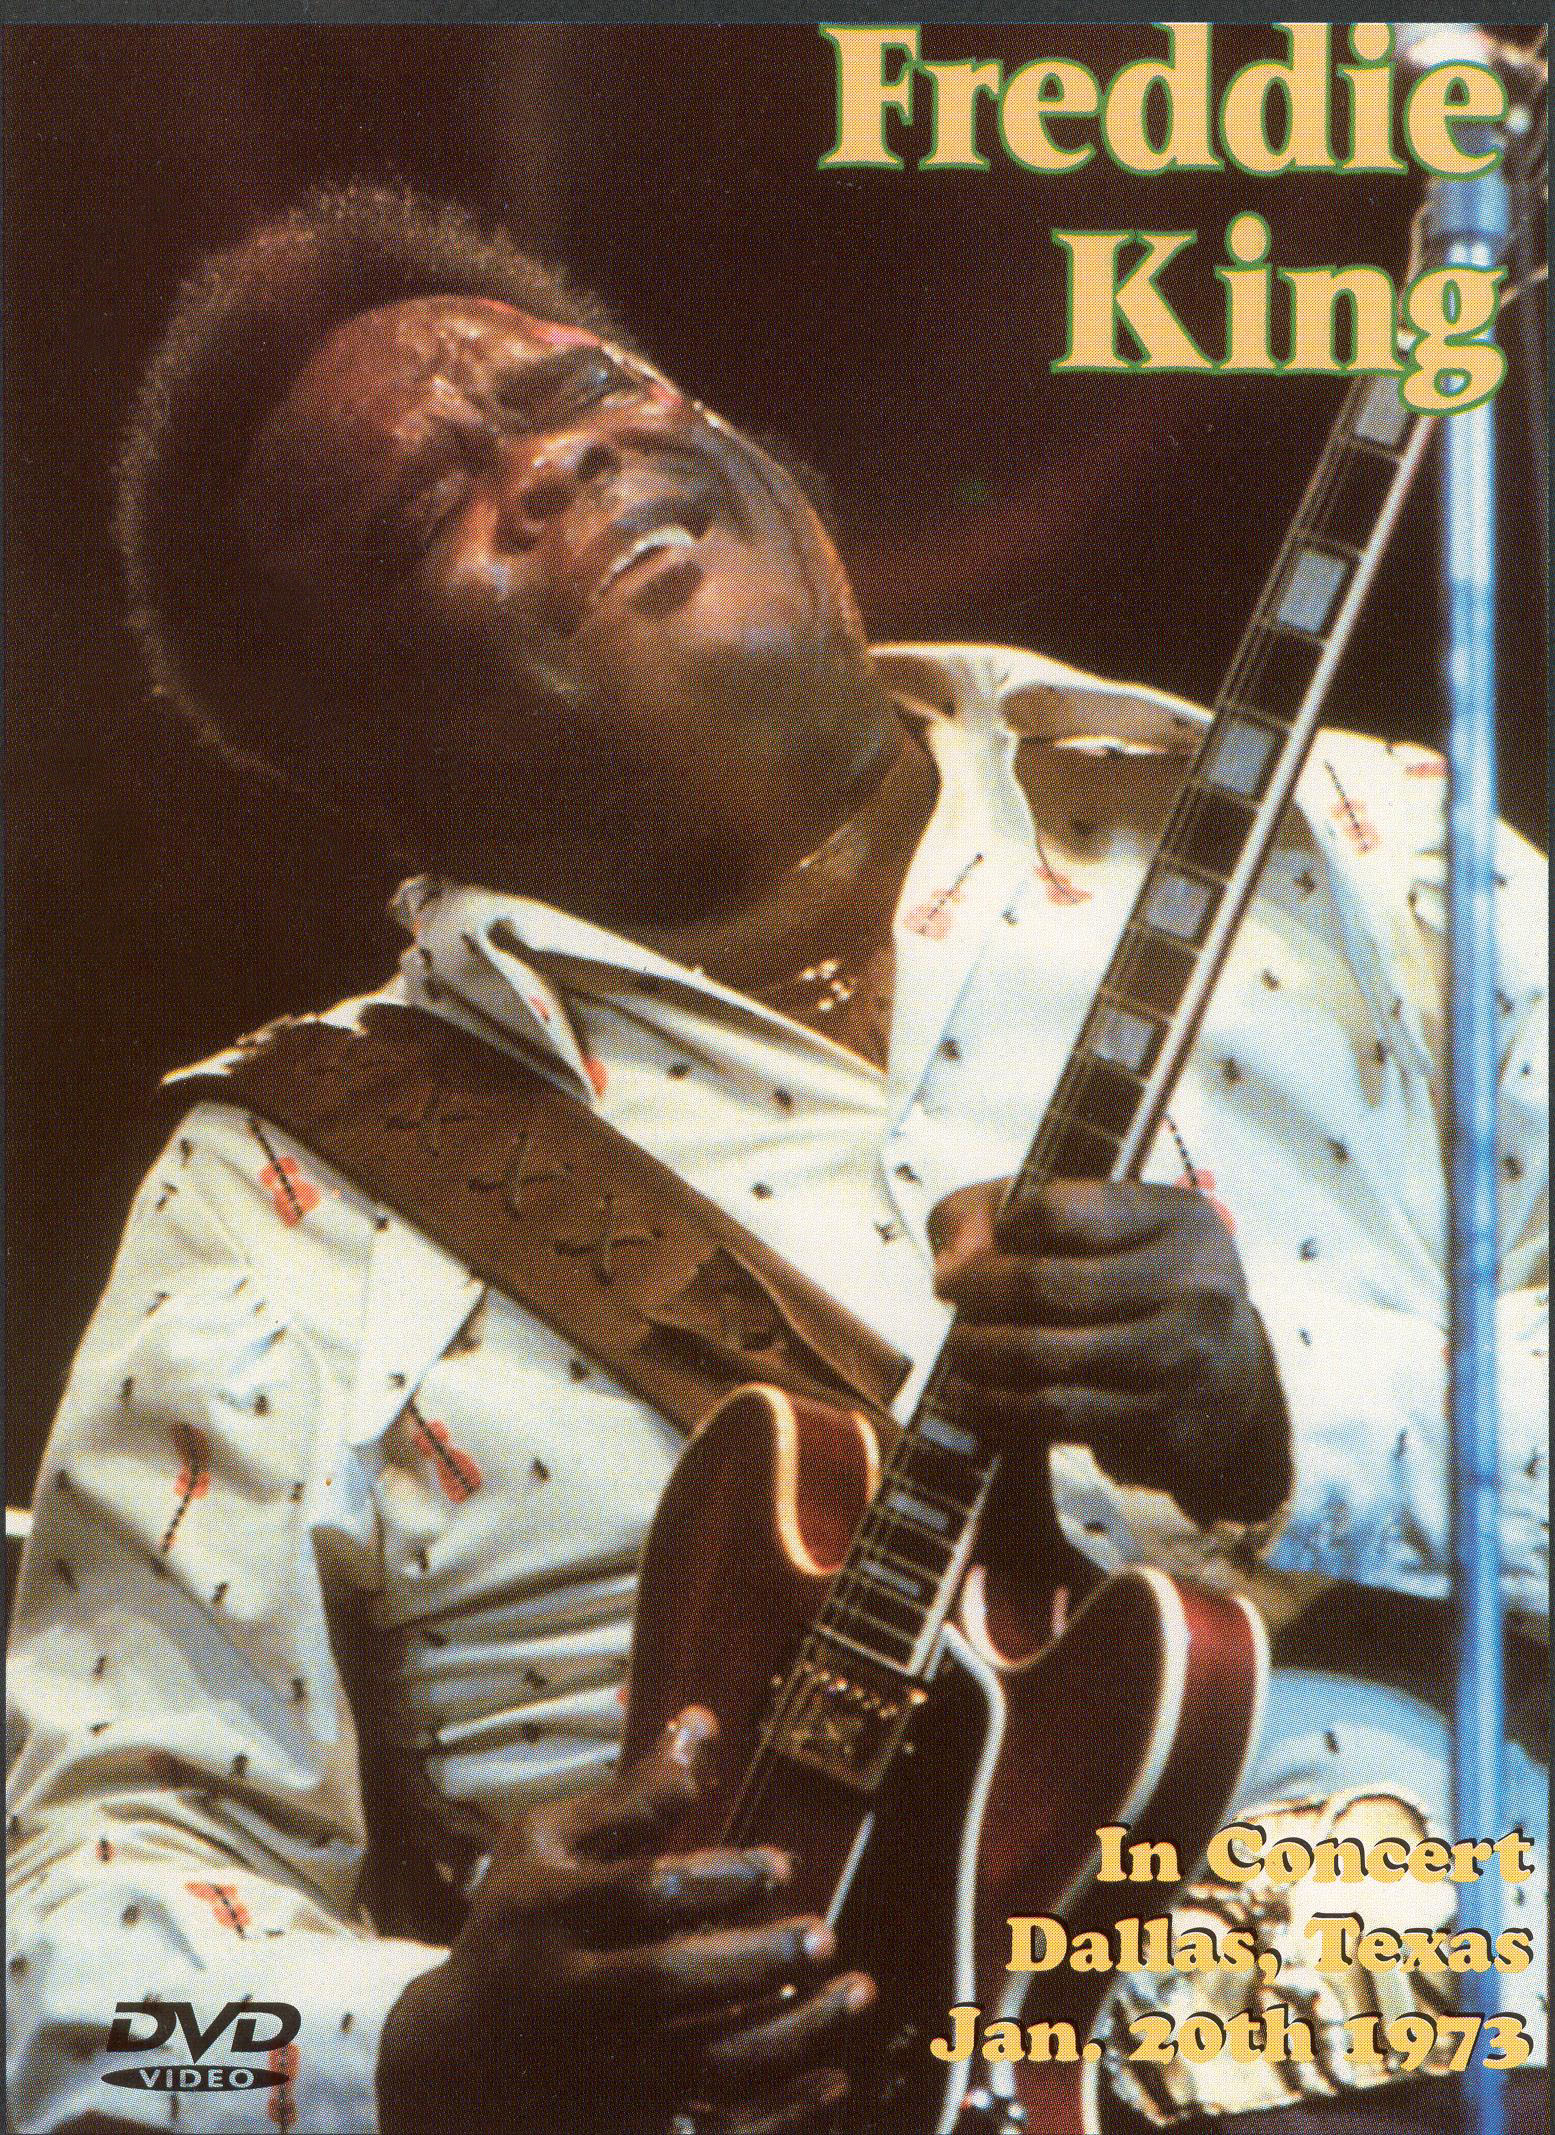 Freddie King: Dallas, Texas - Jan. 20th 1973